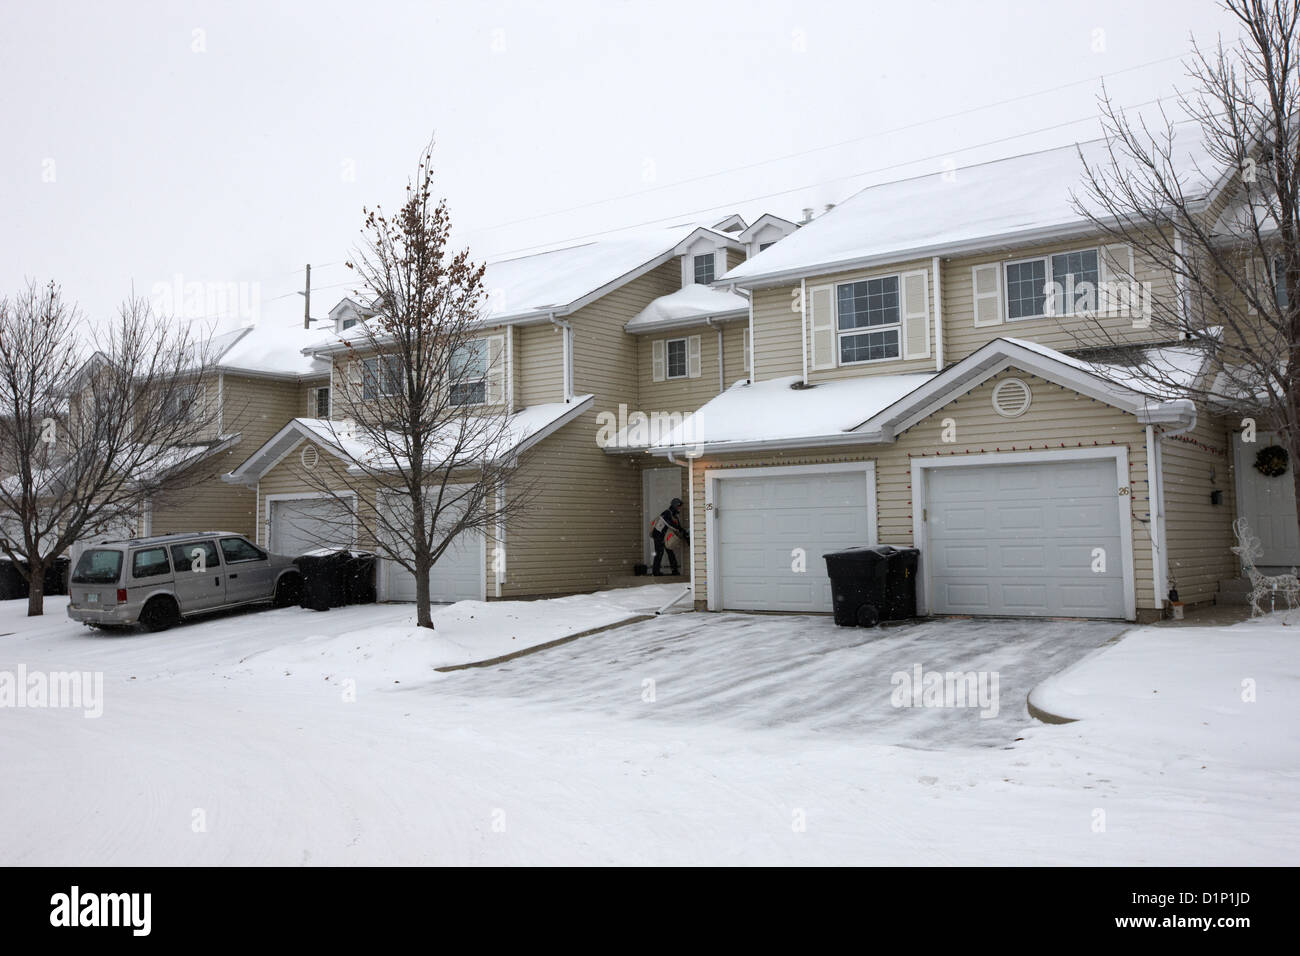 Snow falling in residential street during winter saskatoon for Drummond designs canada